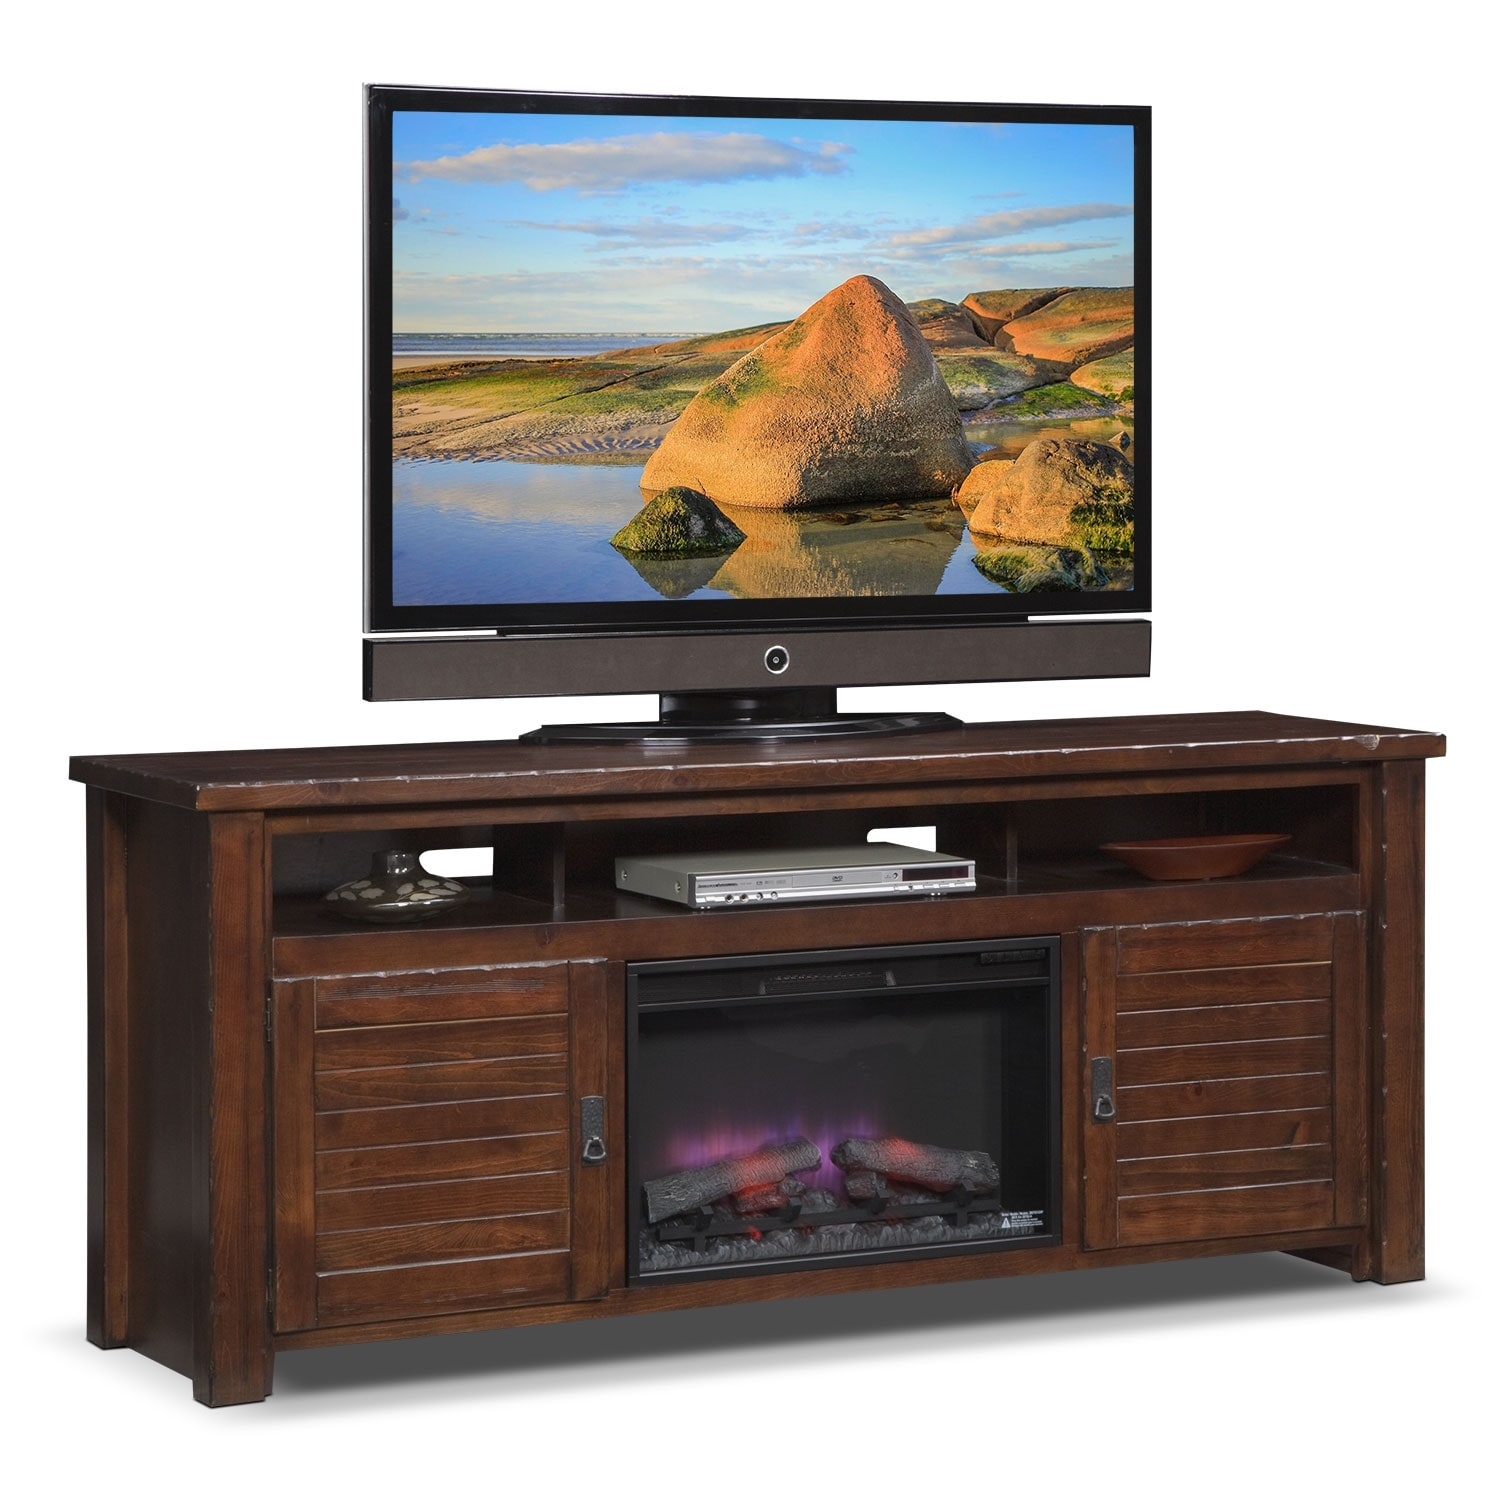 Image Result For Entertainment Stand With Fireplace Insert